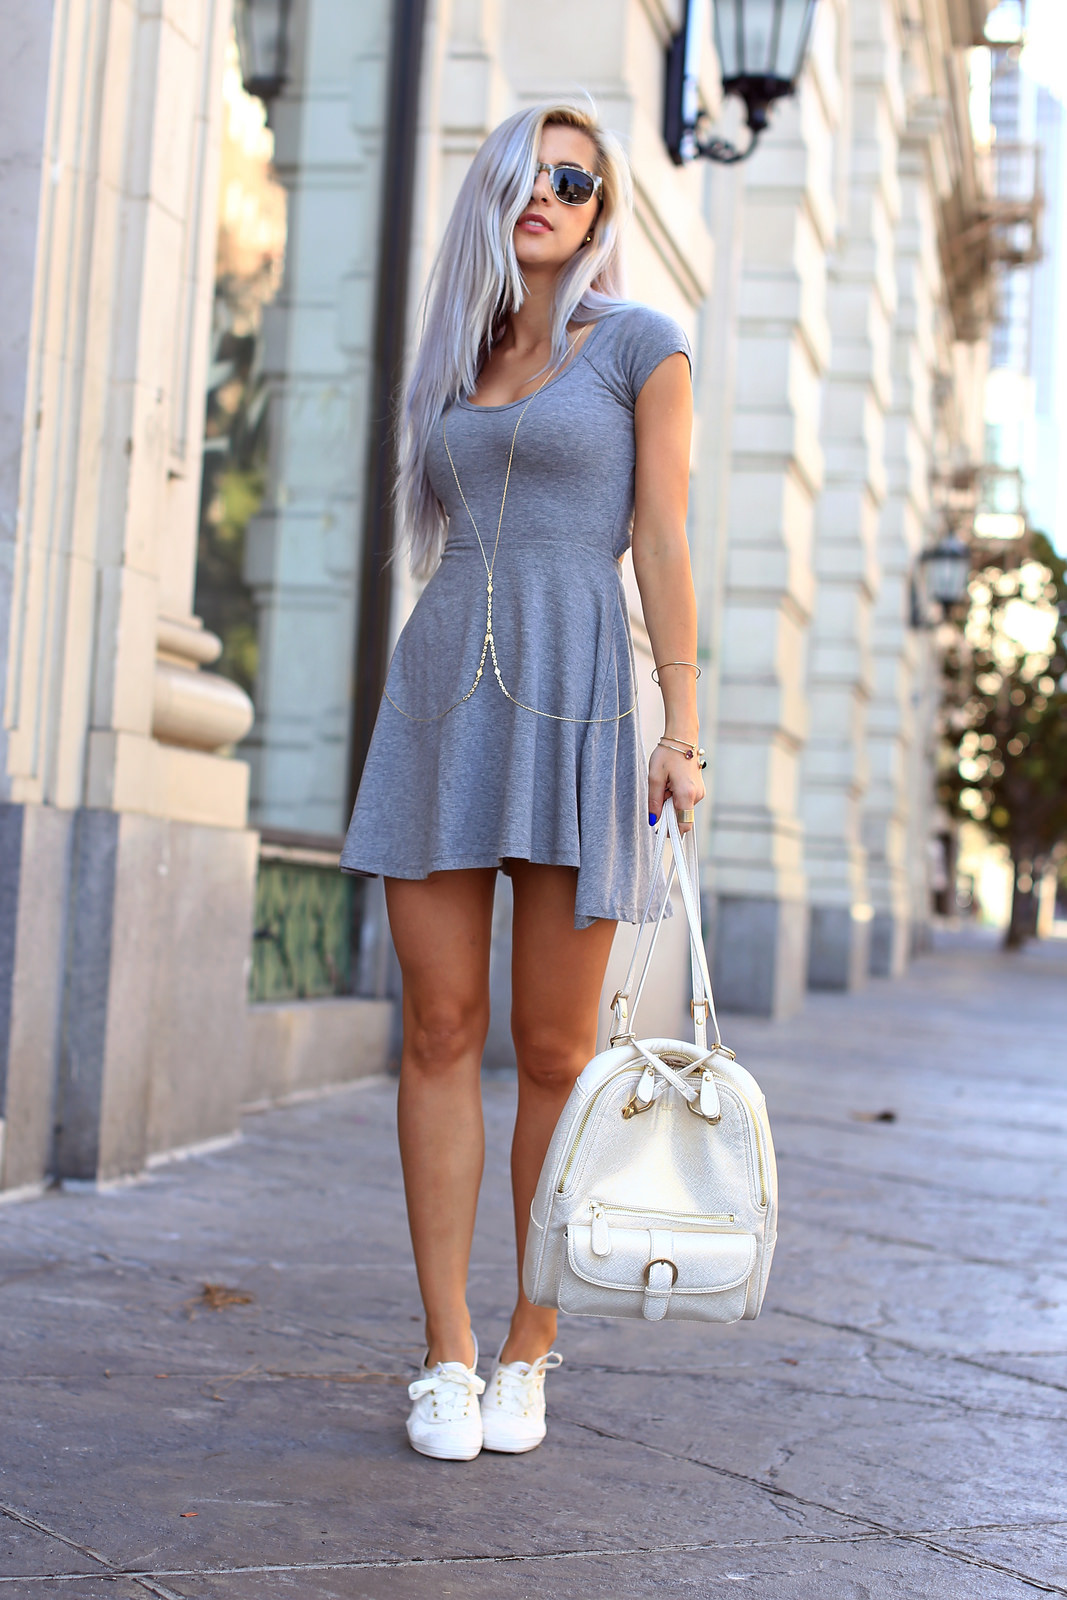 Evelina Barry Is Wearing A Grey Dress By Brandy Melville, A Backpack From Sorial, Shoes From Keds Bodychain And Sunglasses From Warby Parker